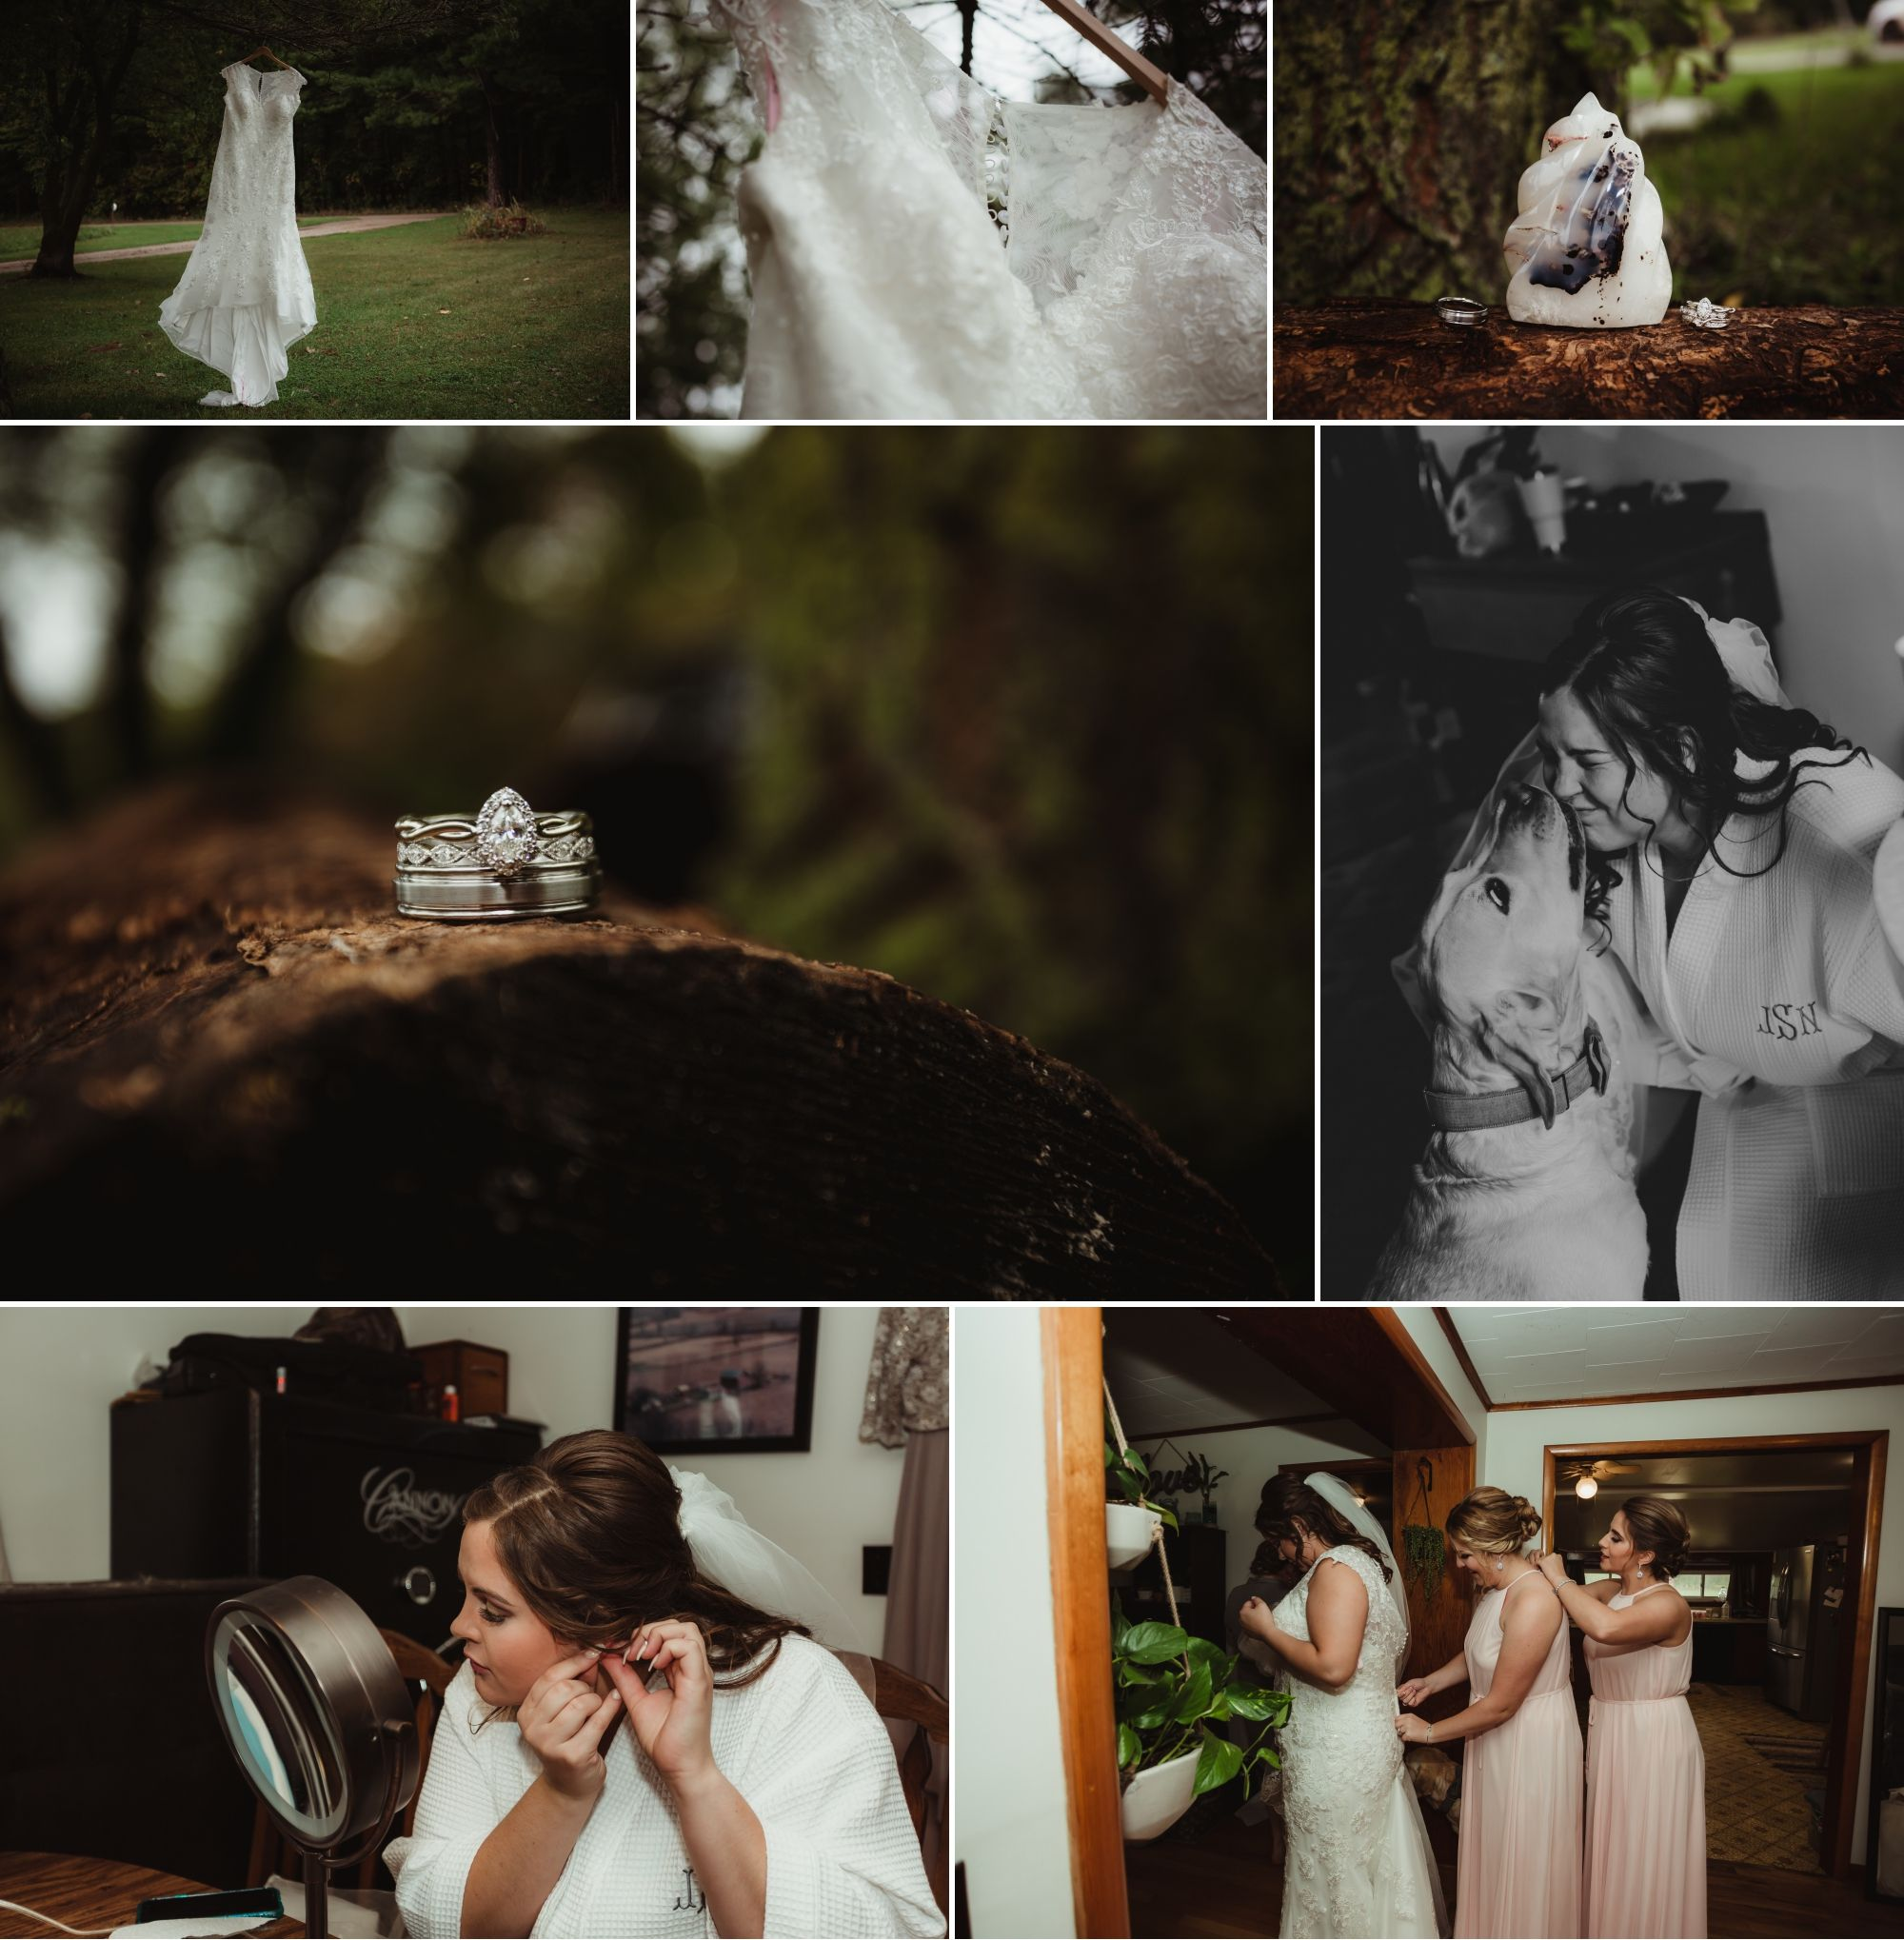 Collage of wedding gown, rings, and the bride getting ready. Her dog kisses her face in one.